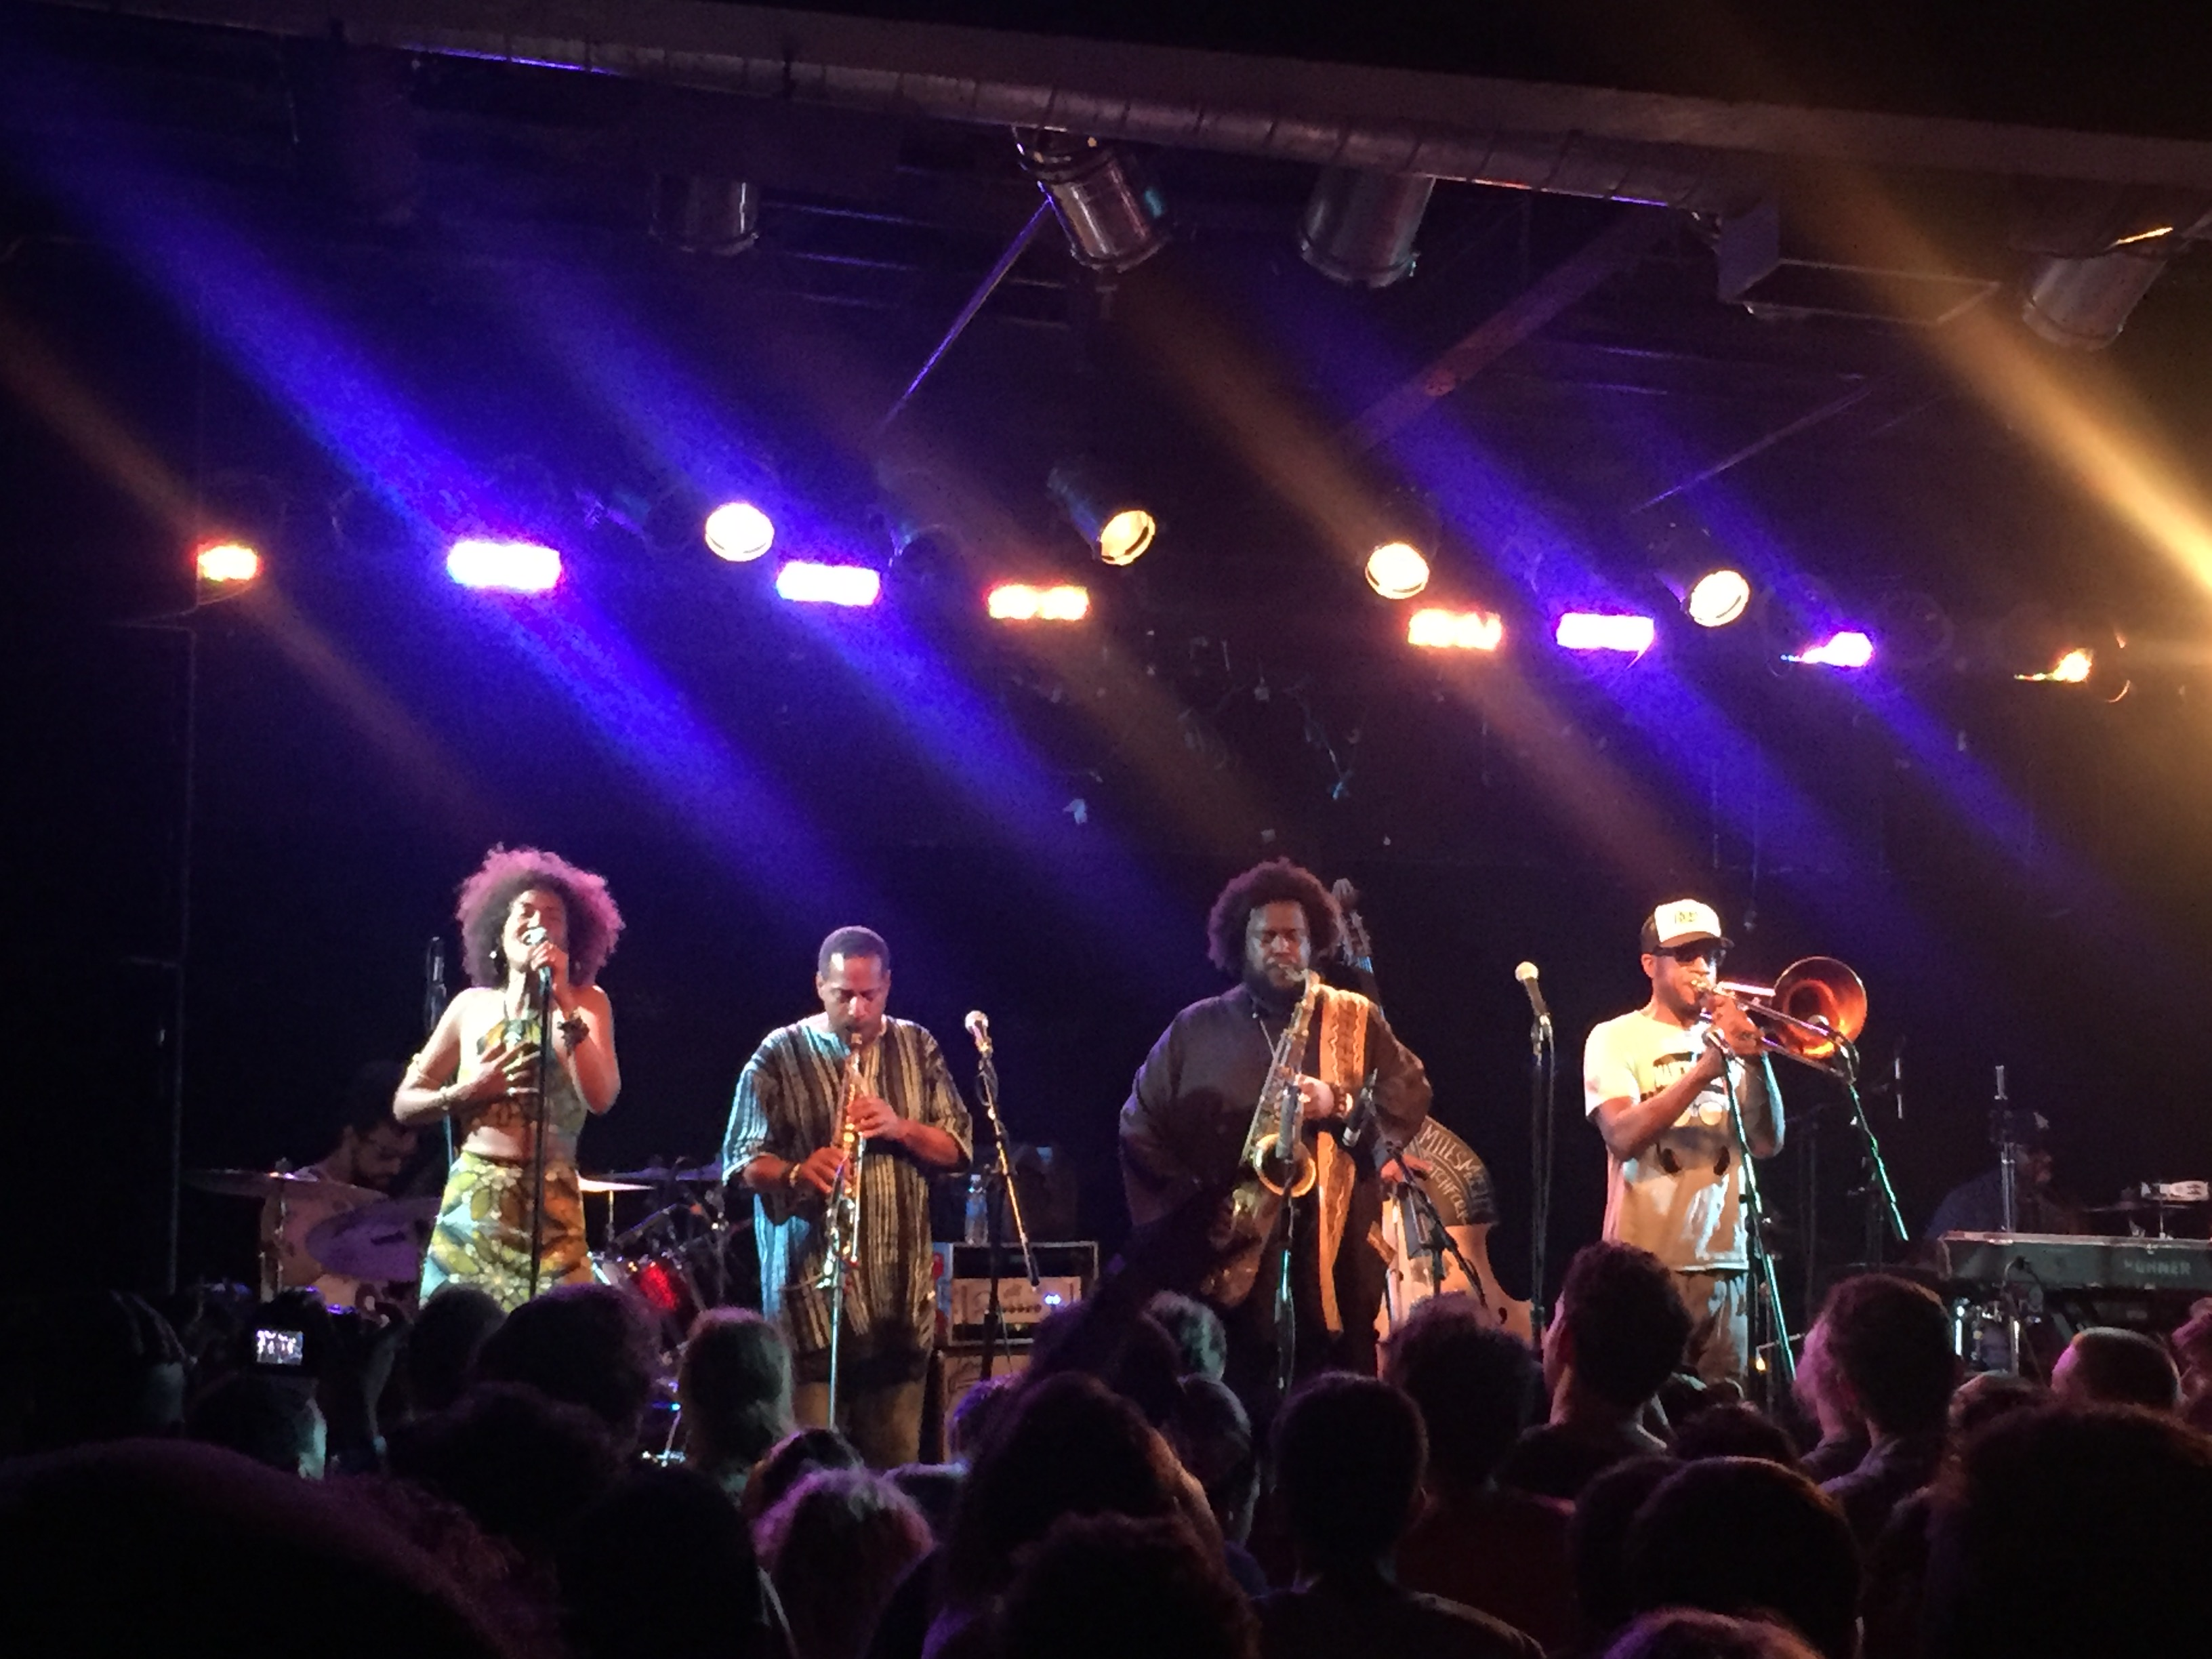 Review / Setlist | Kamasi Washington @ Bottom Lounge 7/17/16